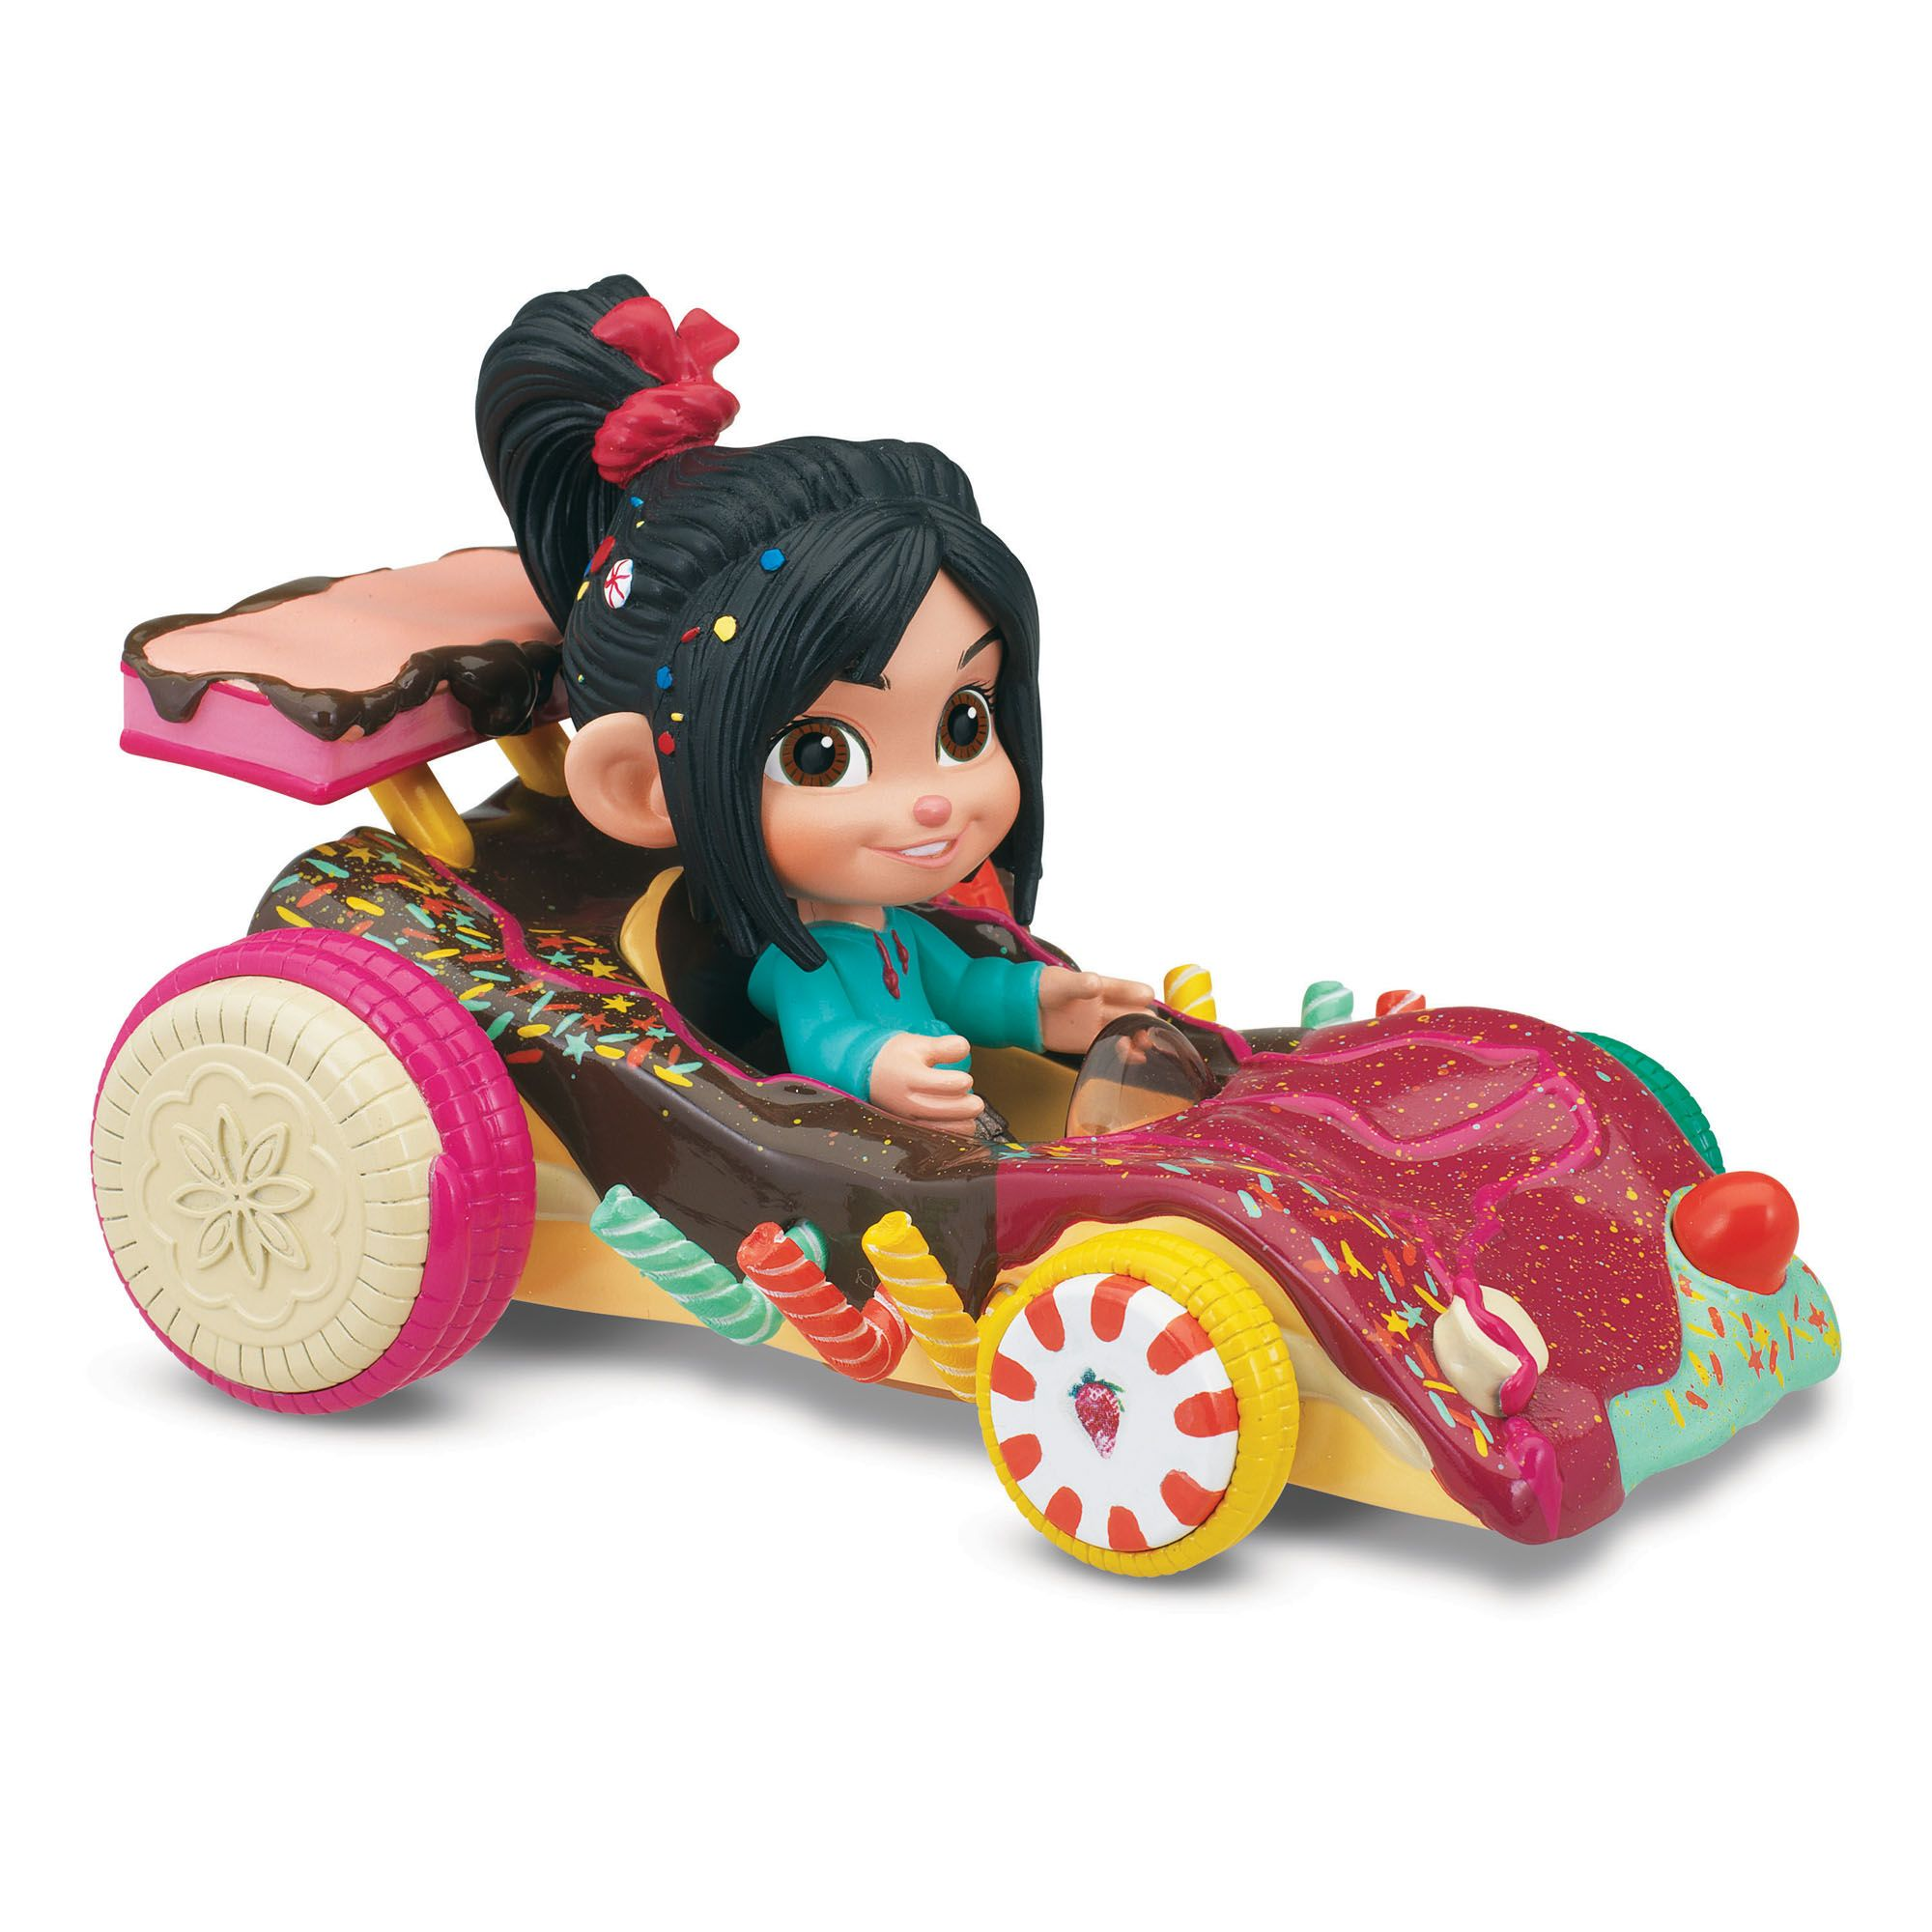 wreck it ralph sugar rush vehicle with figure vehicles trains on birthday cakes walmart ca